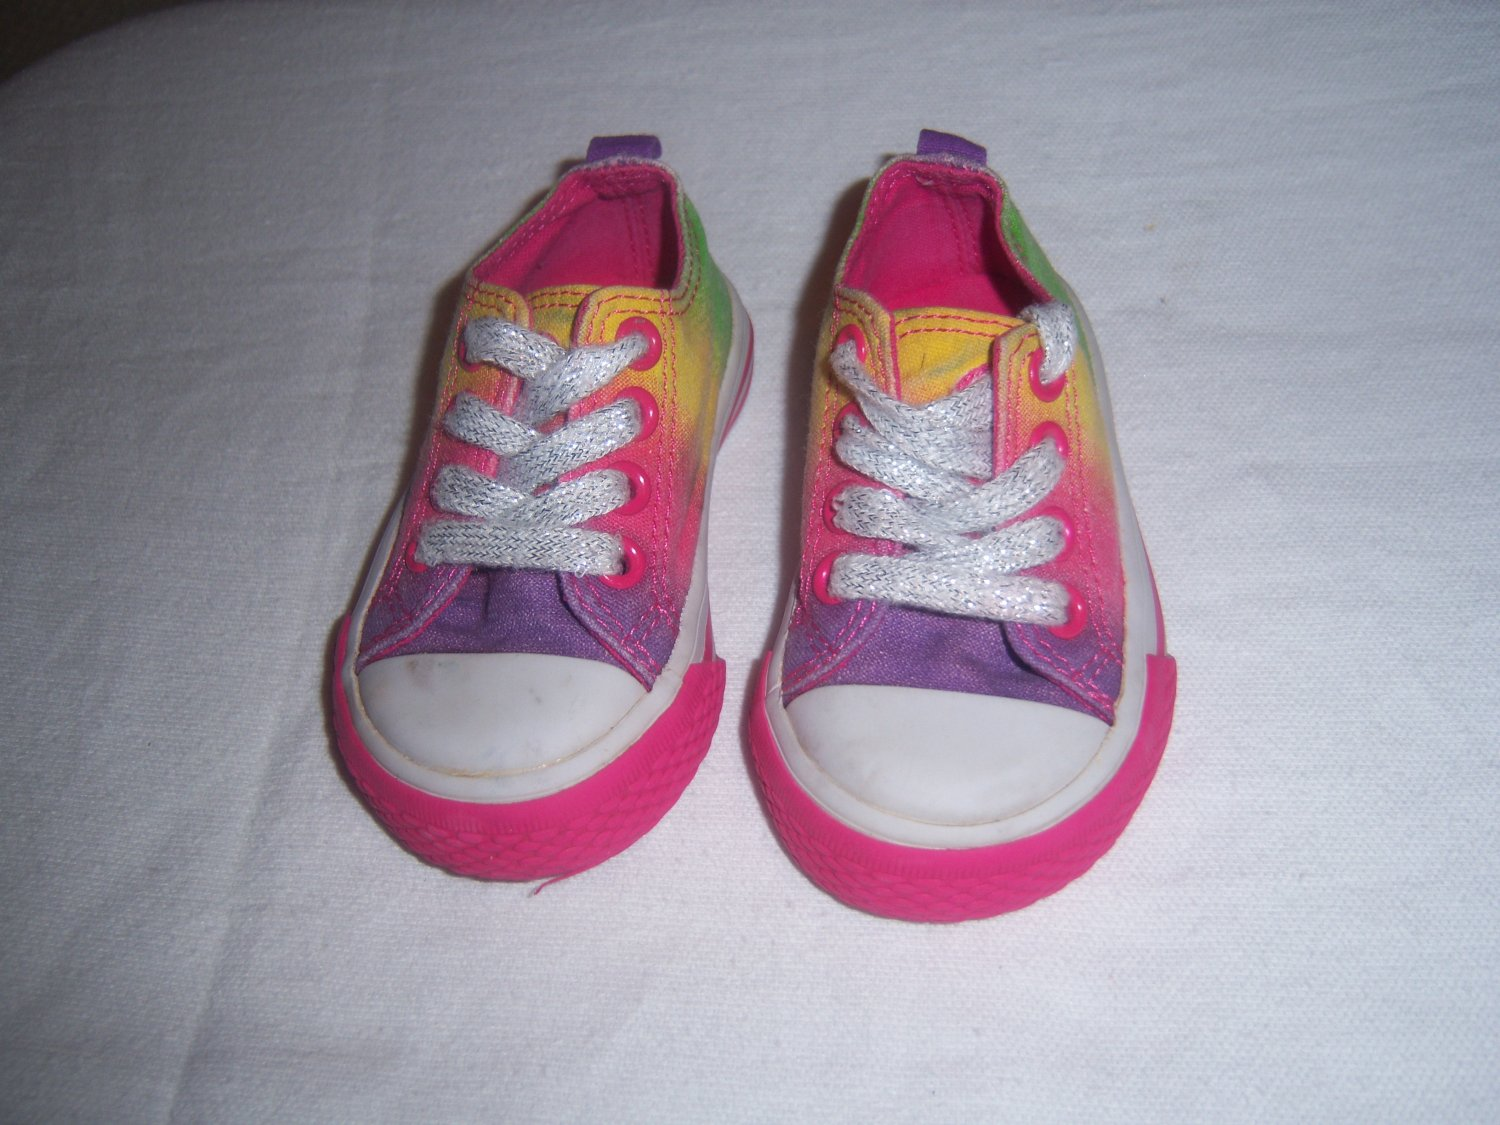 Childrens Place Toddler Girls Rainbow Canvas Sneakers Size 3M